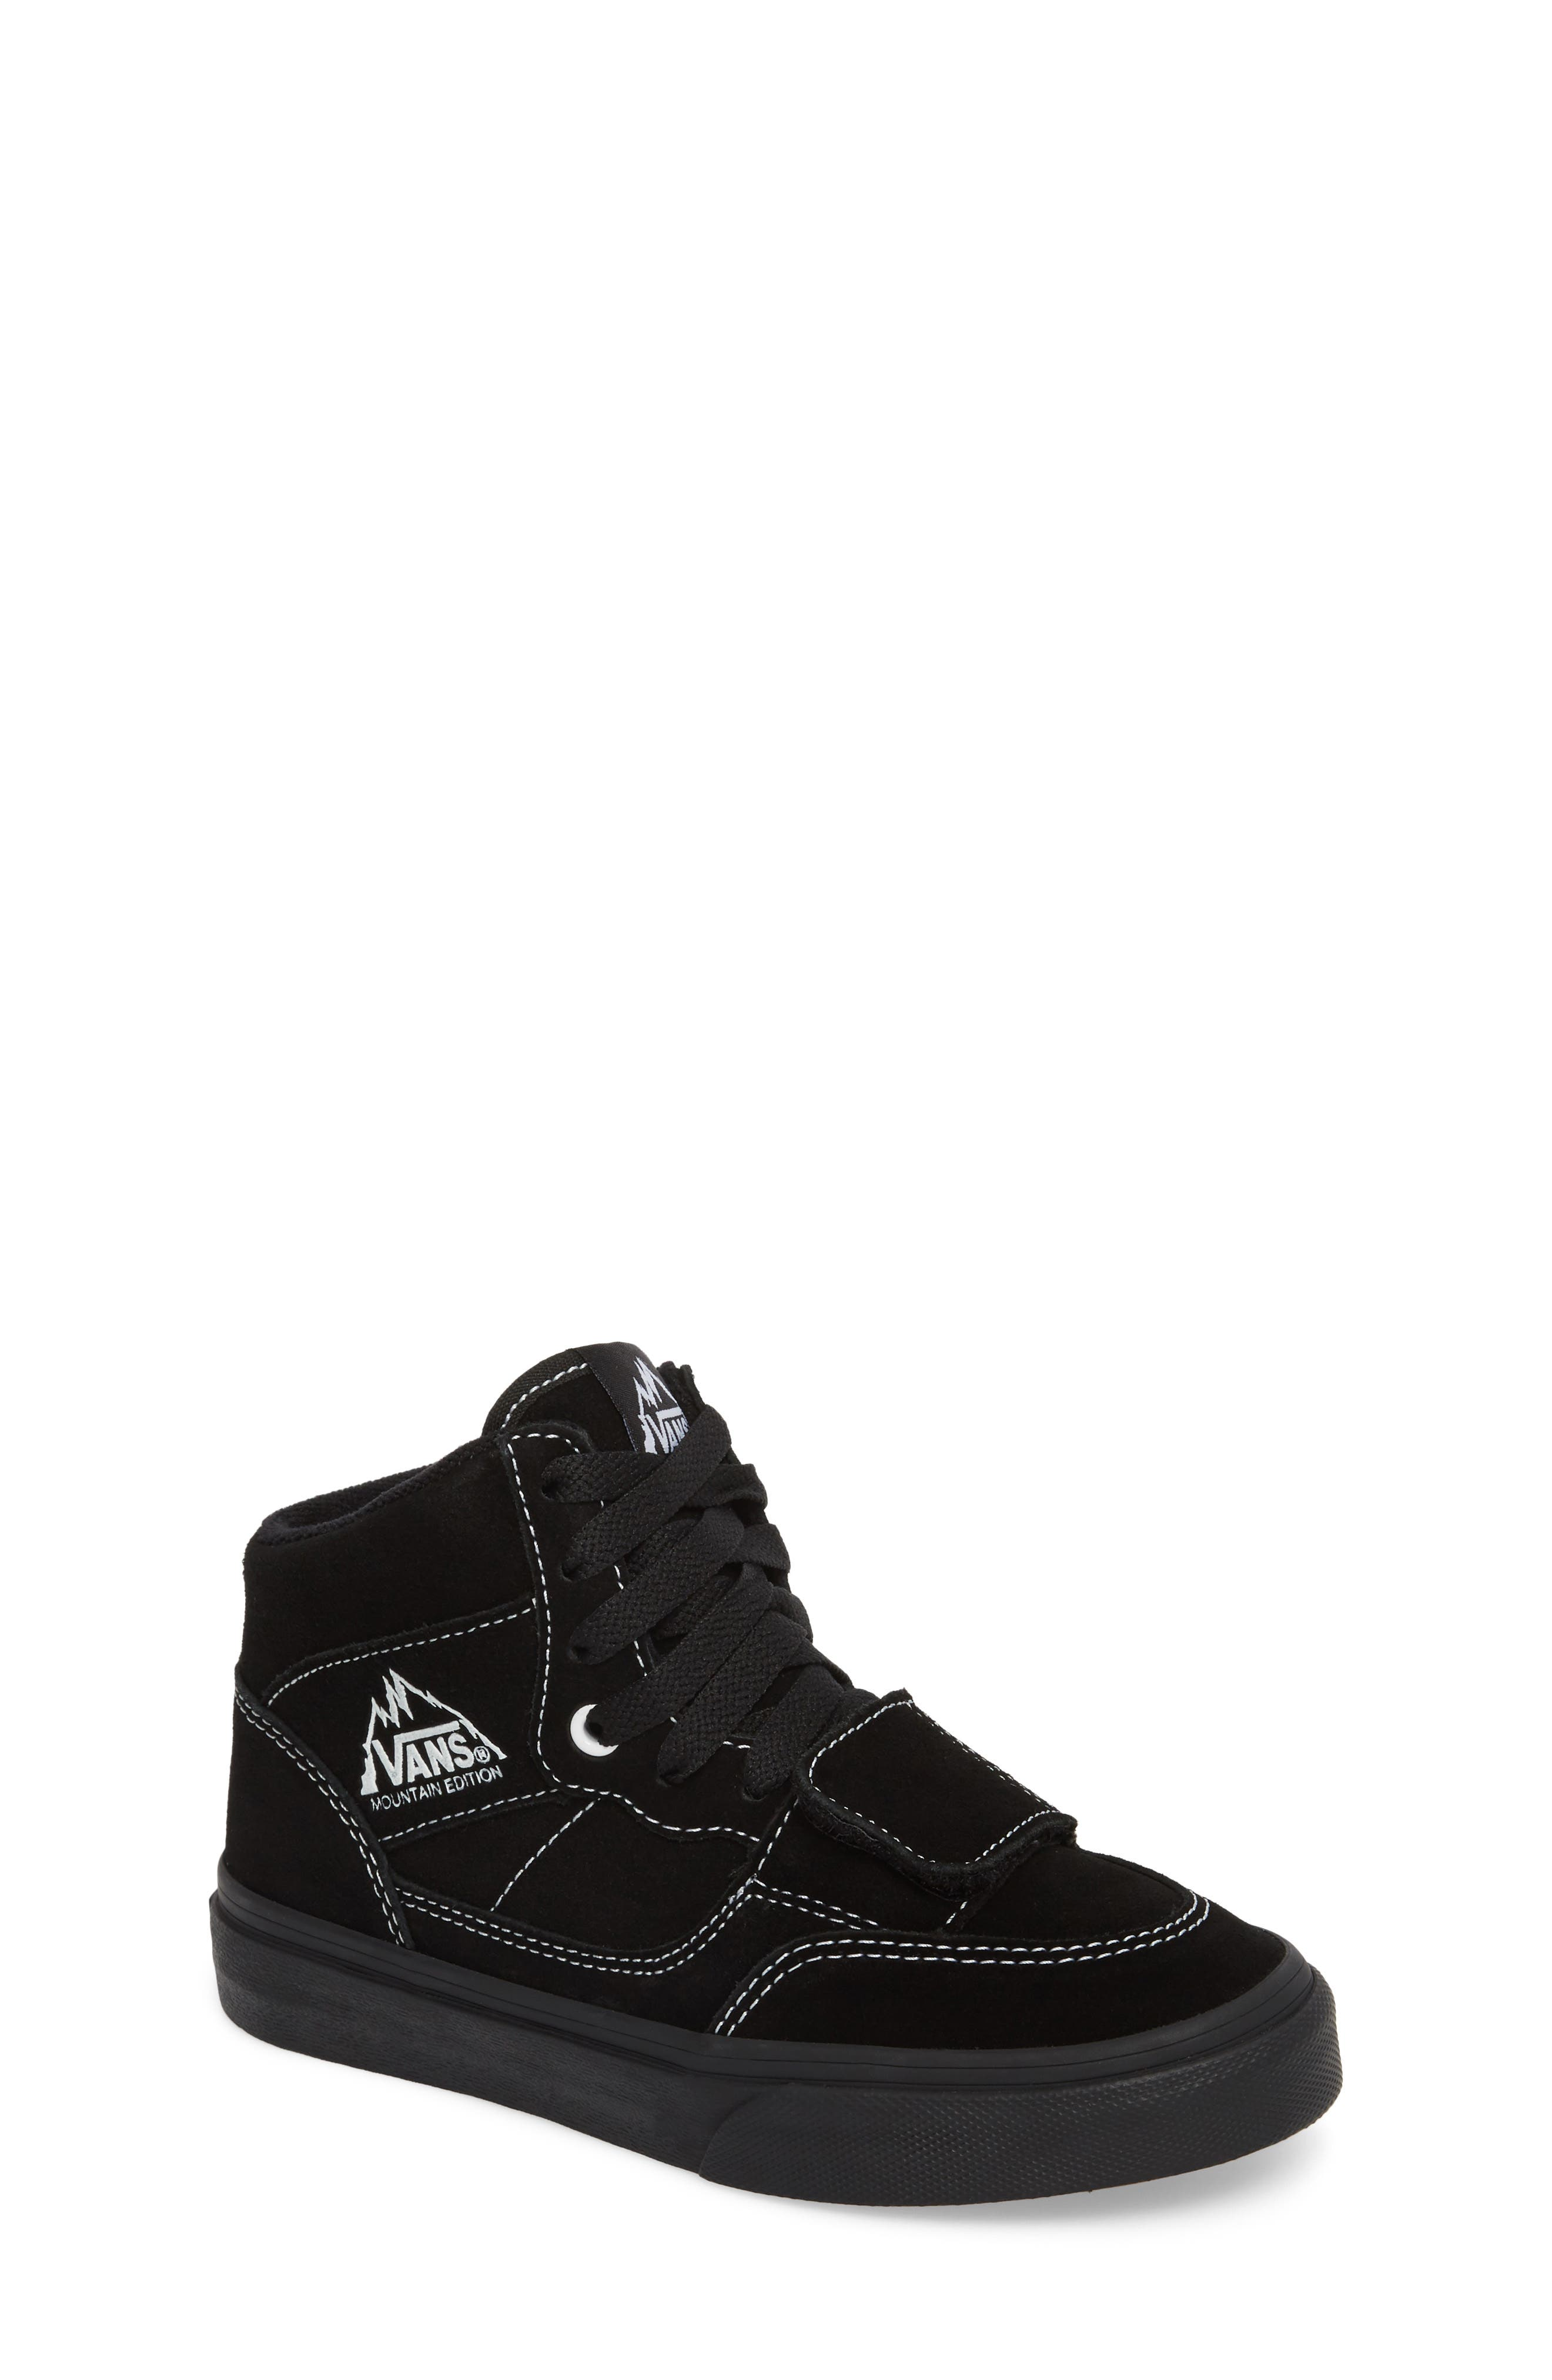 vans shoes black and white boys. vans mountain edition mid top sneaker (baby, walker, toddler, little kid \u0026 shoes black and white boys